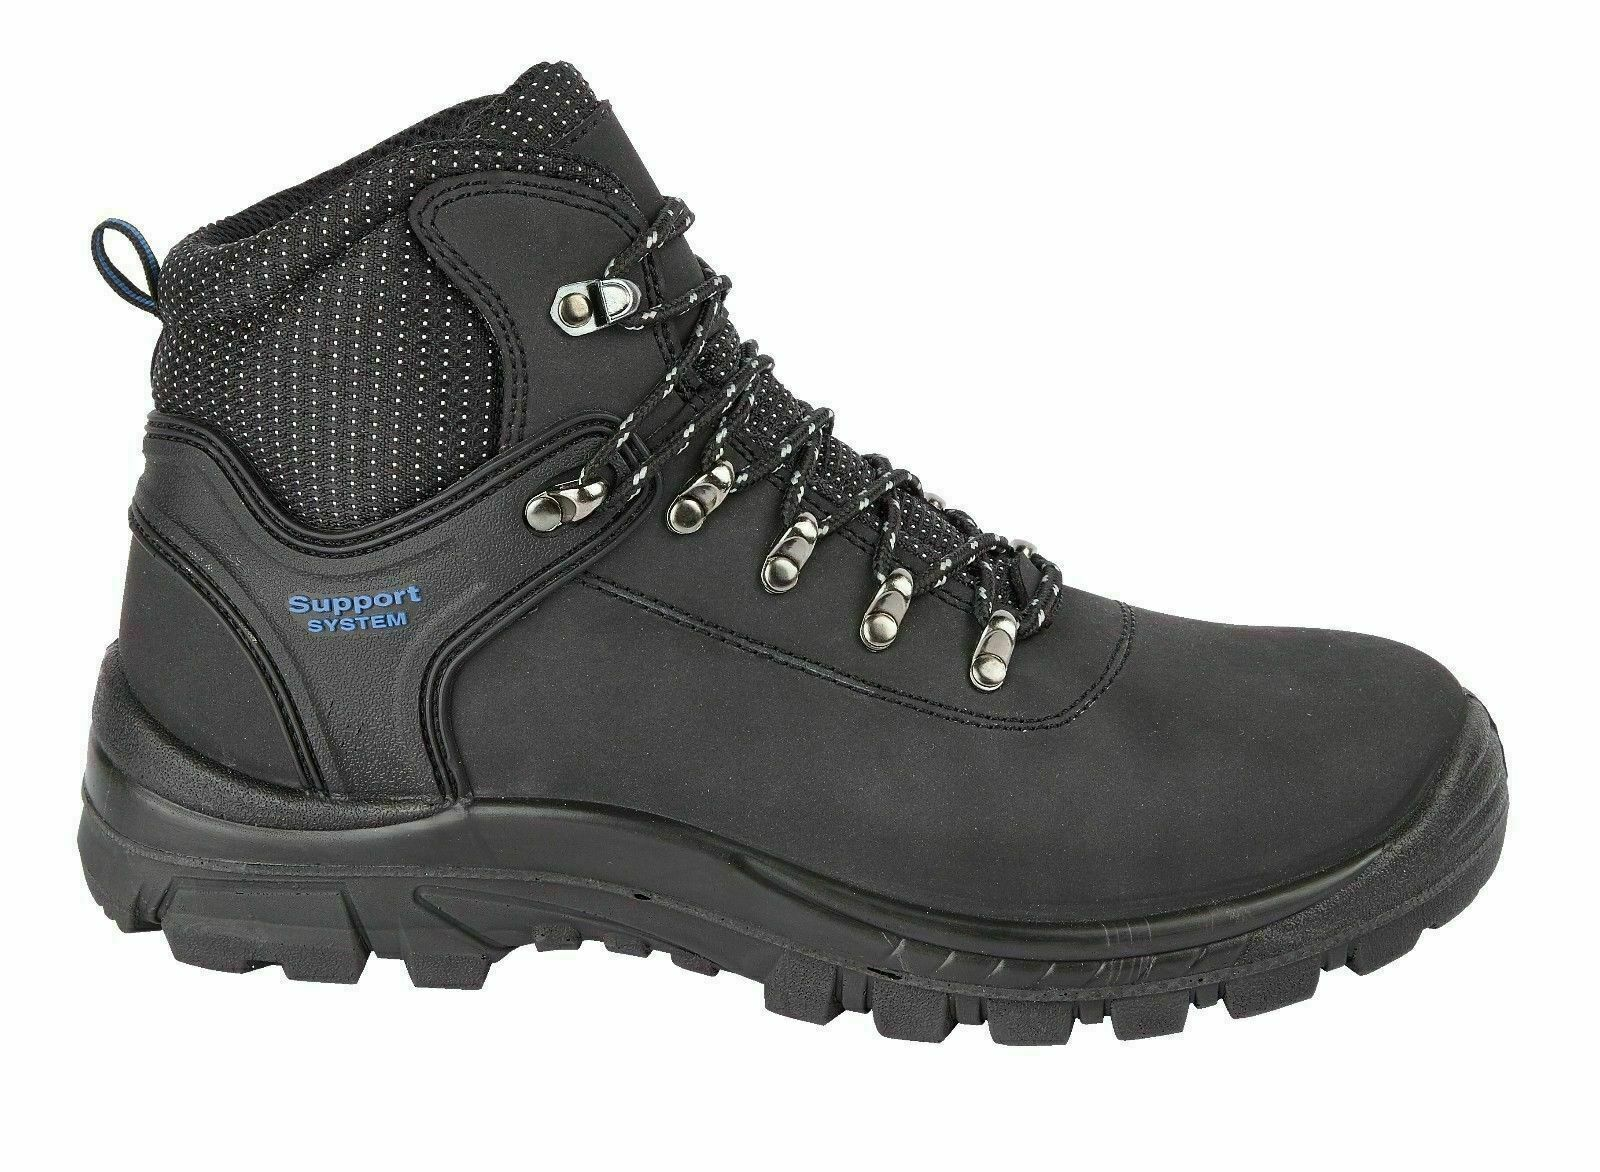 HIMALAYAN 2601 S1P Black Hiker Steel Toe Safety Boot With Midsole